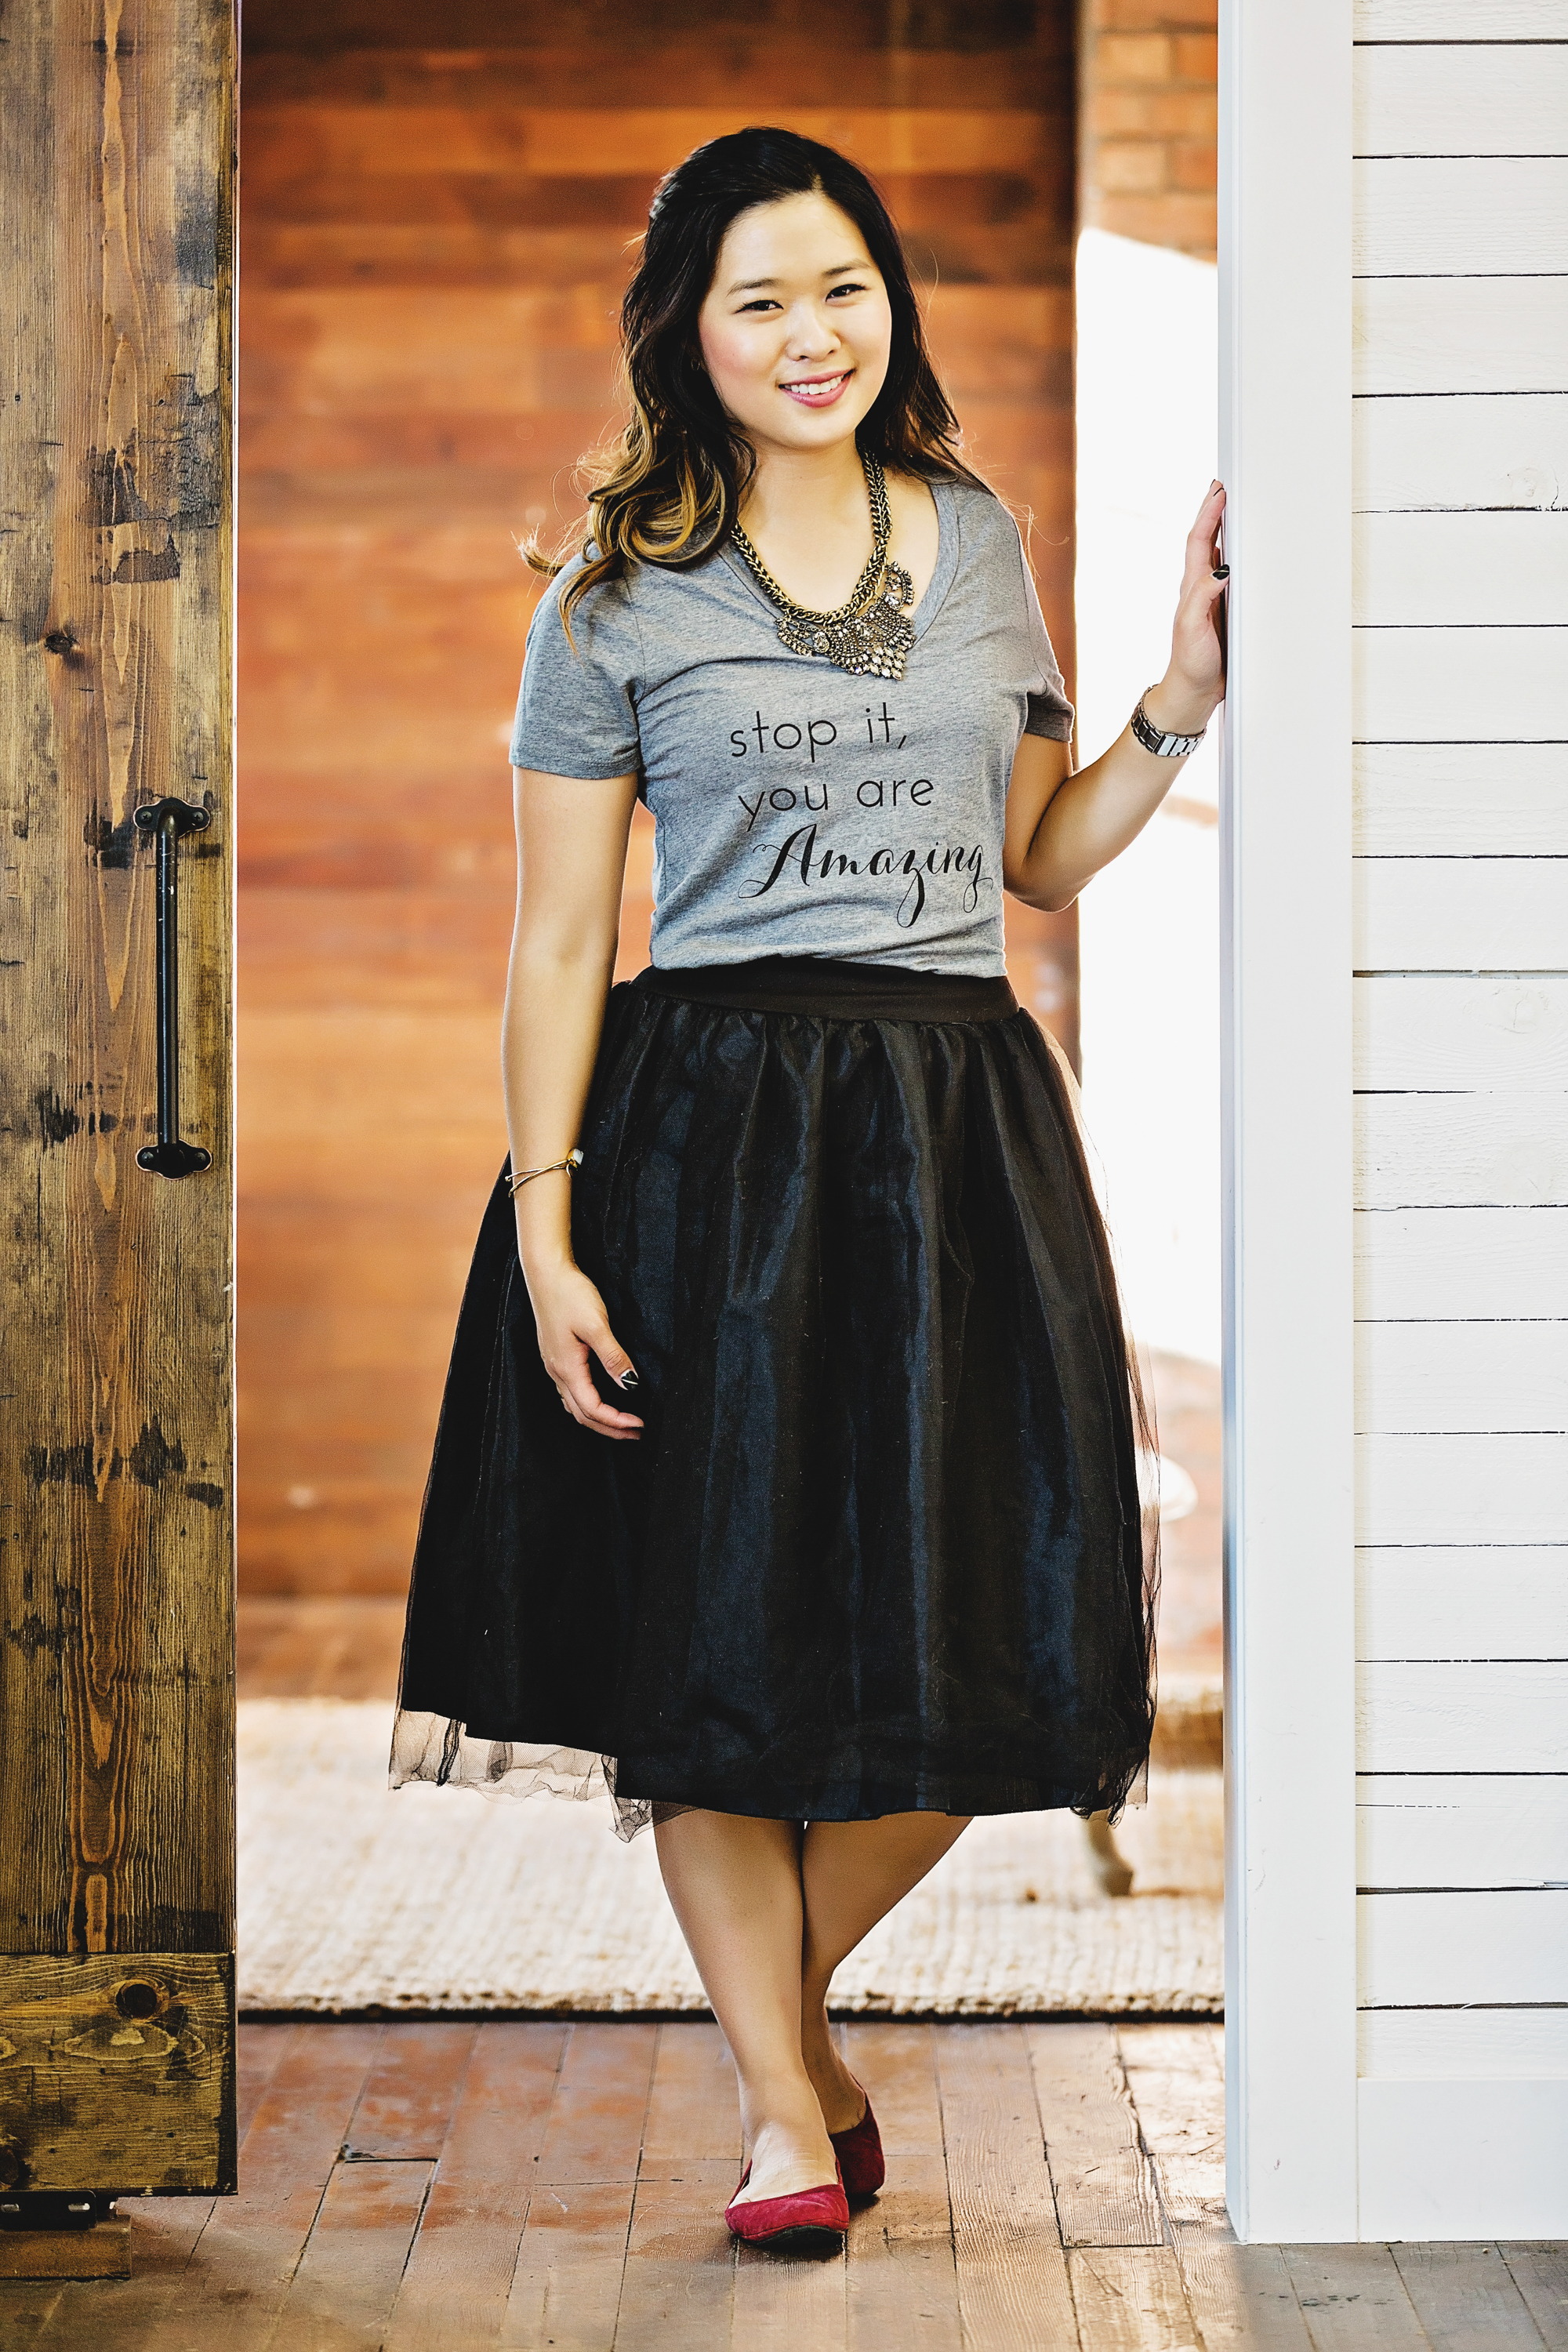 Graphic tee and tulle skirt